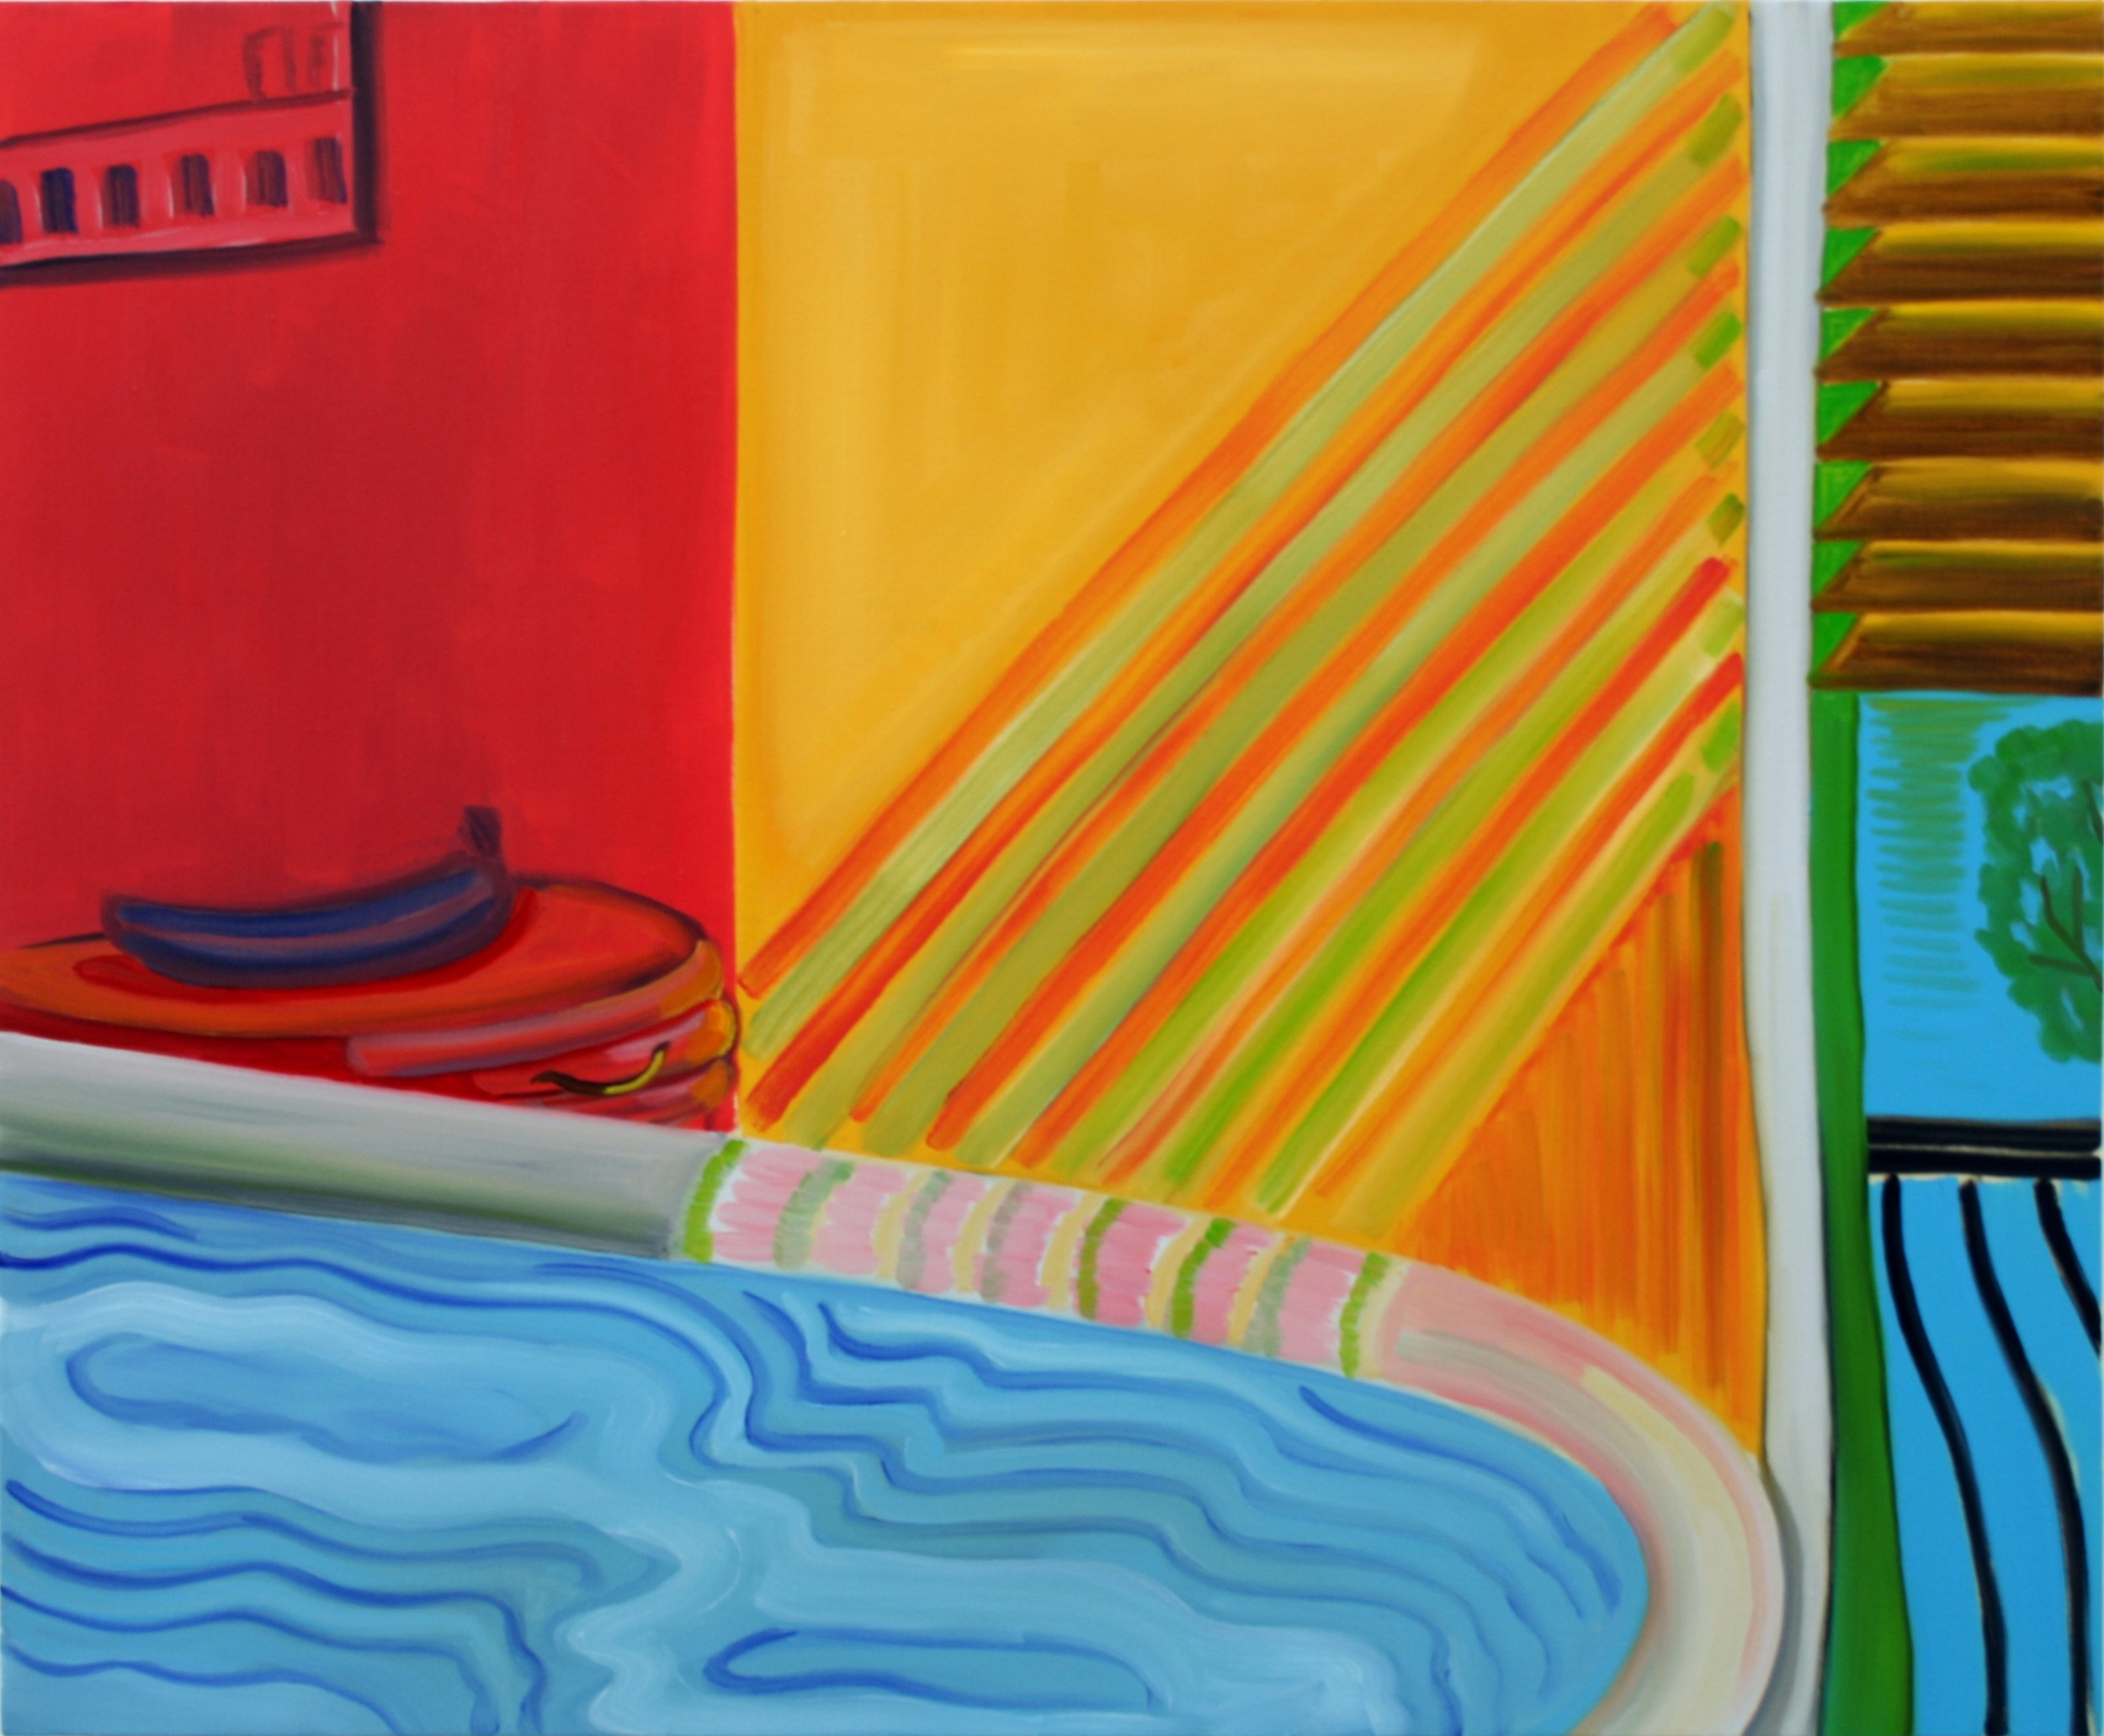 Heatwave  2011 Oil on canvas, 75 x 91 cm